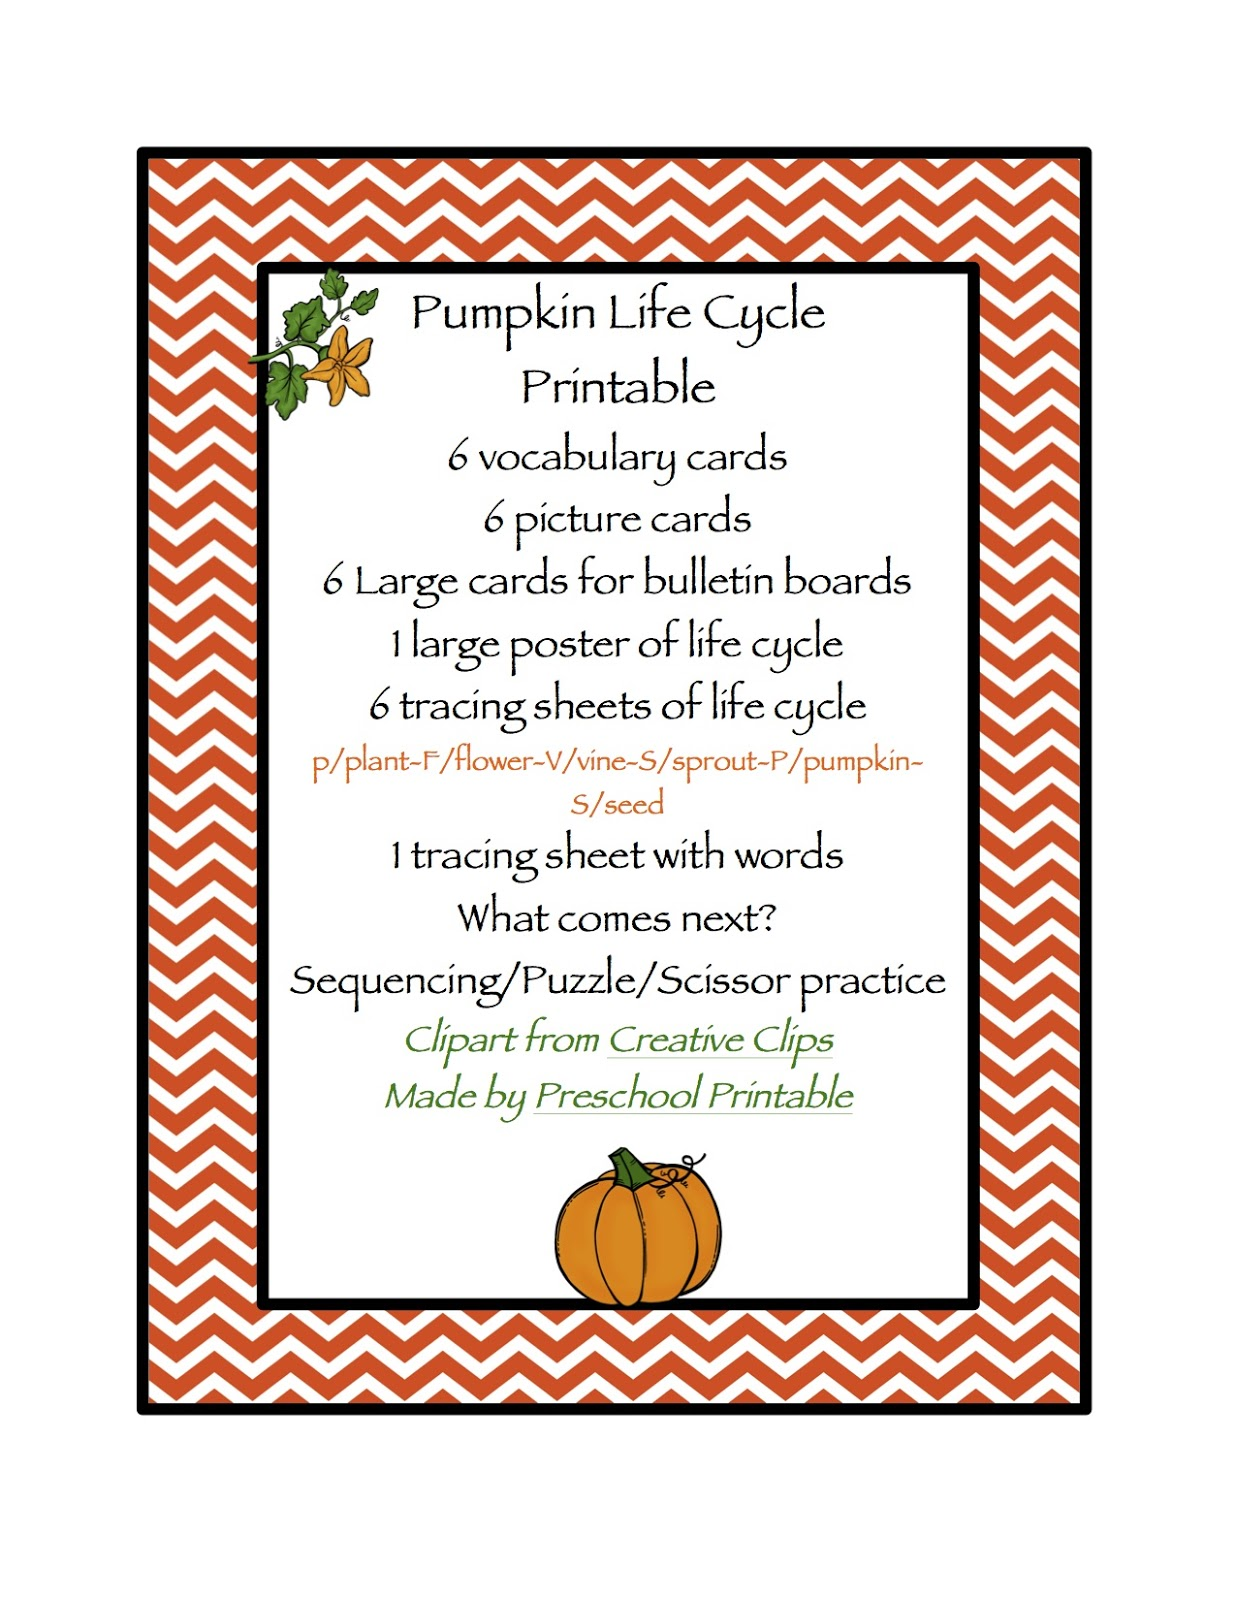 Pumpkin Life Cycle Printable Preschool Printables